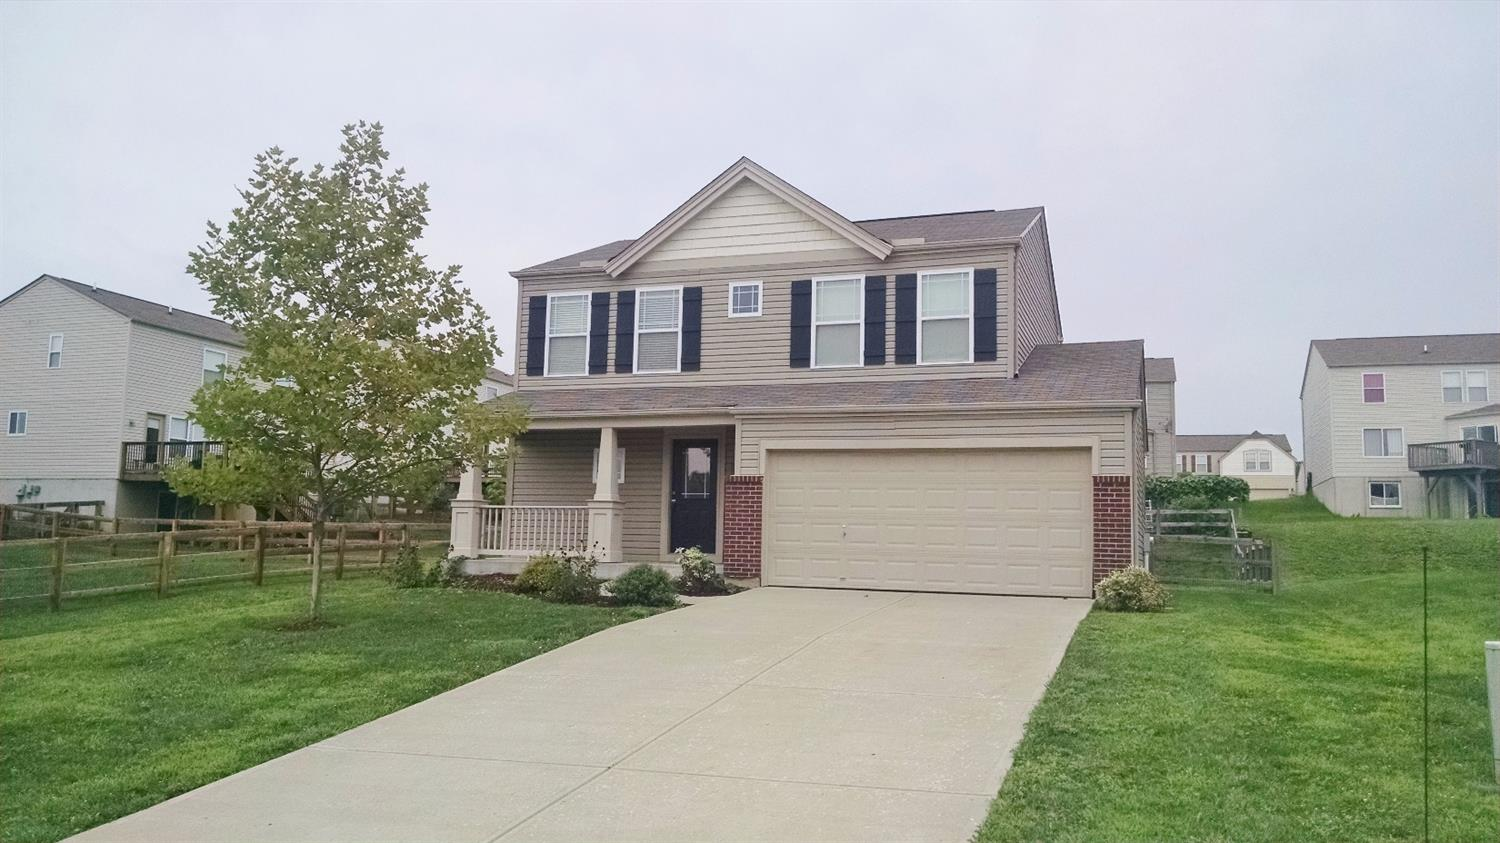 Photo 1 for 1358 Grandarbor Cir Independence, KY 41051